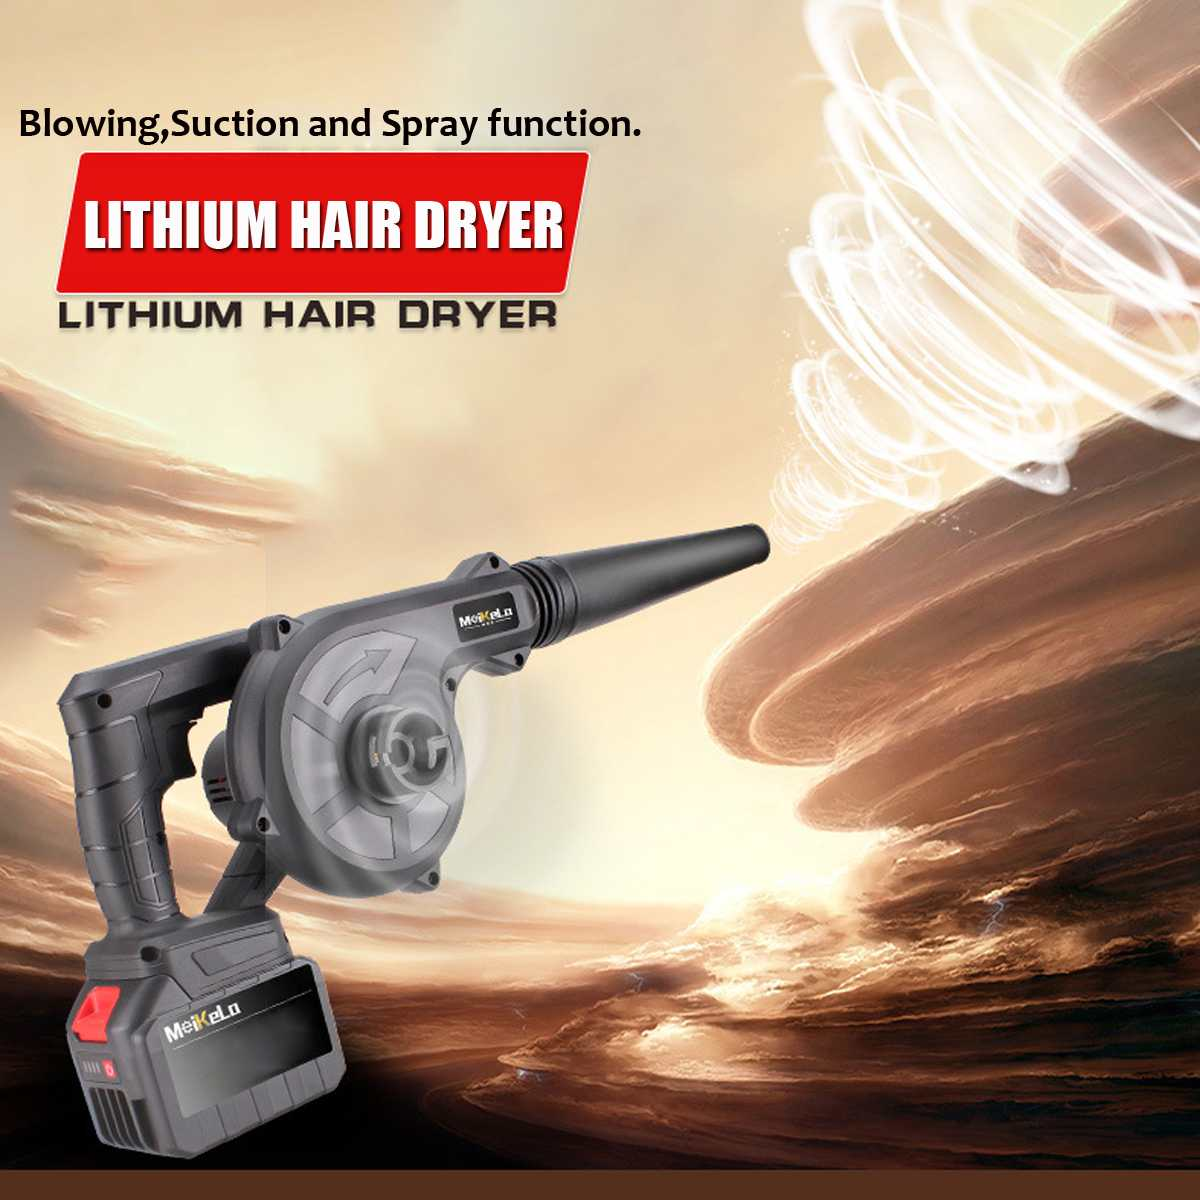 2000W Cordless Electric Air Blower Brushless Handheld Leaf Blower & Suction Li-ion Battery Computer Dust Collector Cleaner